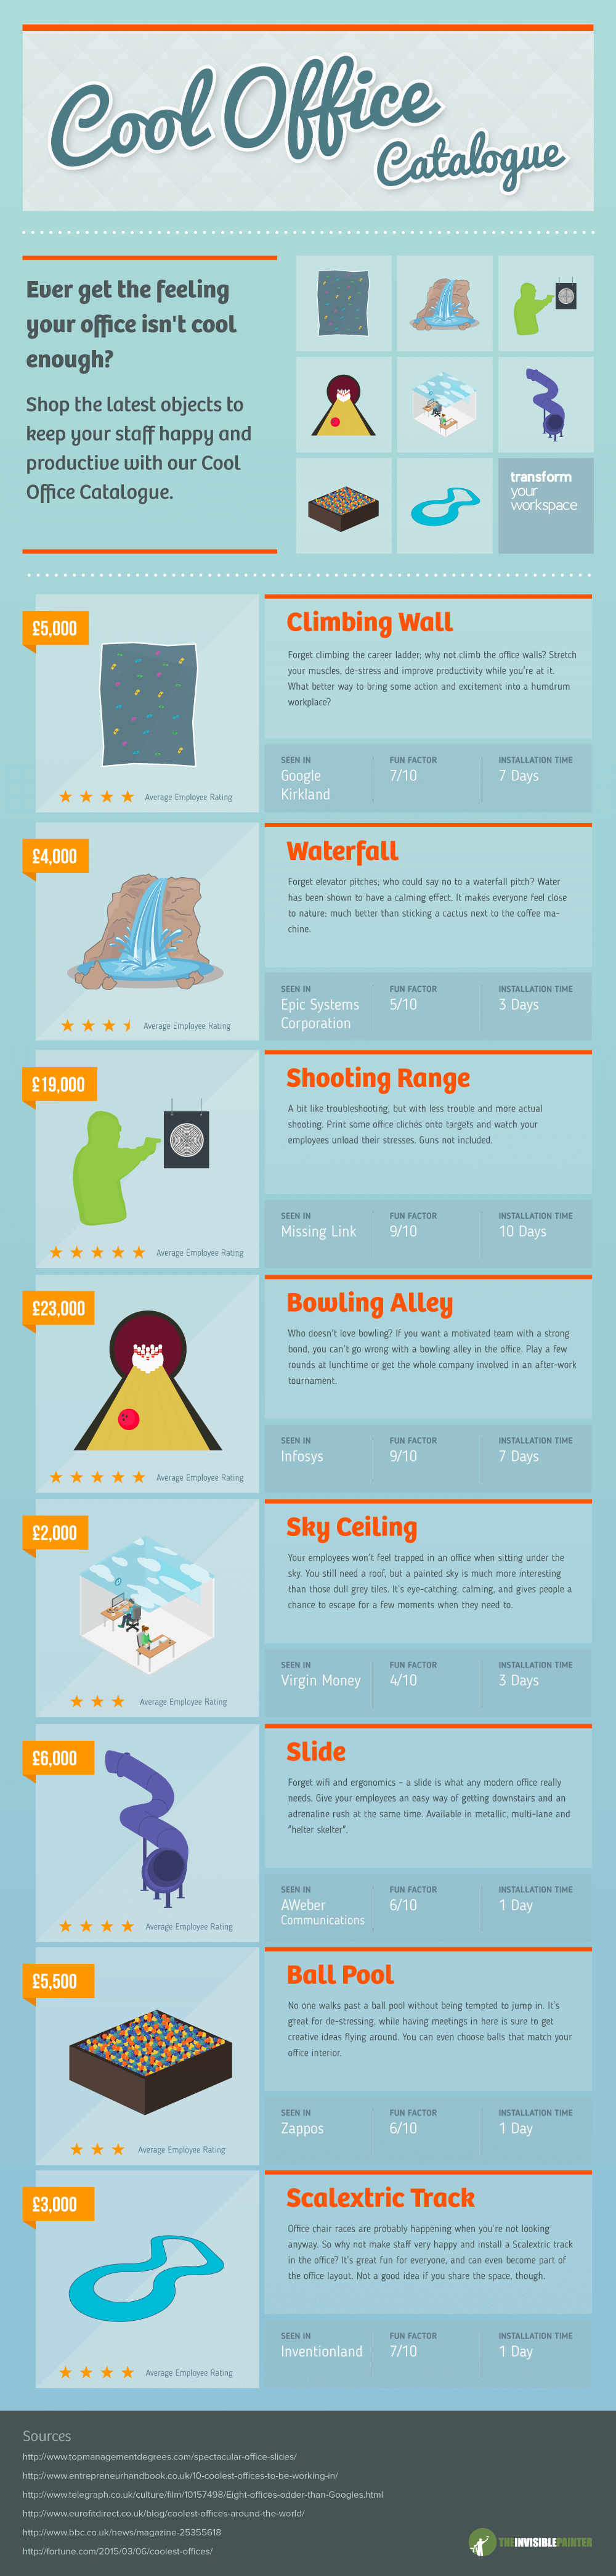 A cool infographic with office fit out and fun ideas